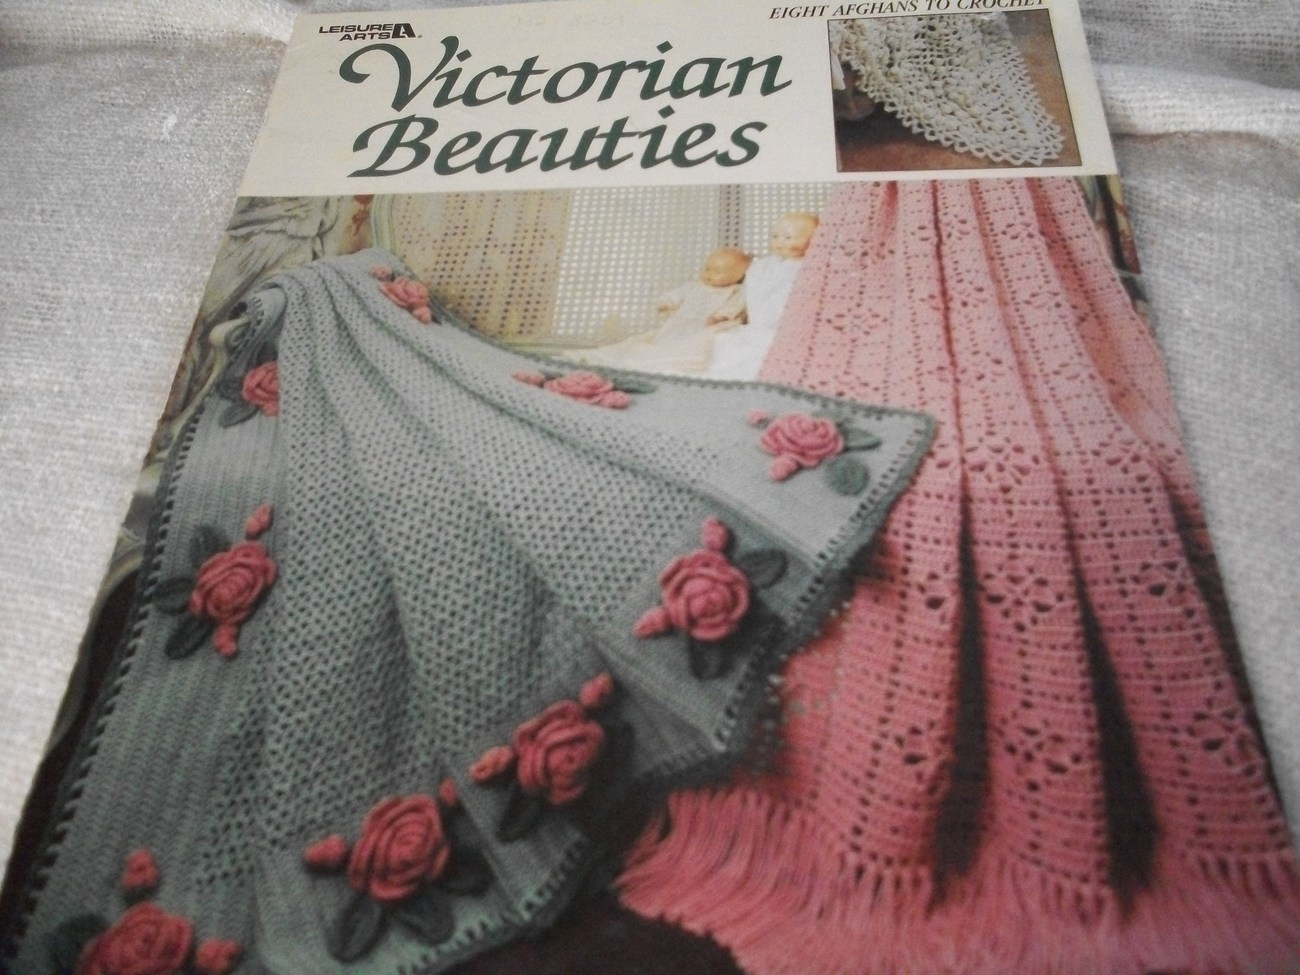 Primary image for Victorian Beauties: Afghans to Crochet